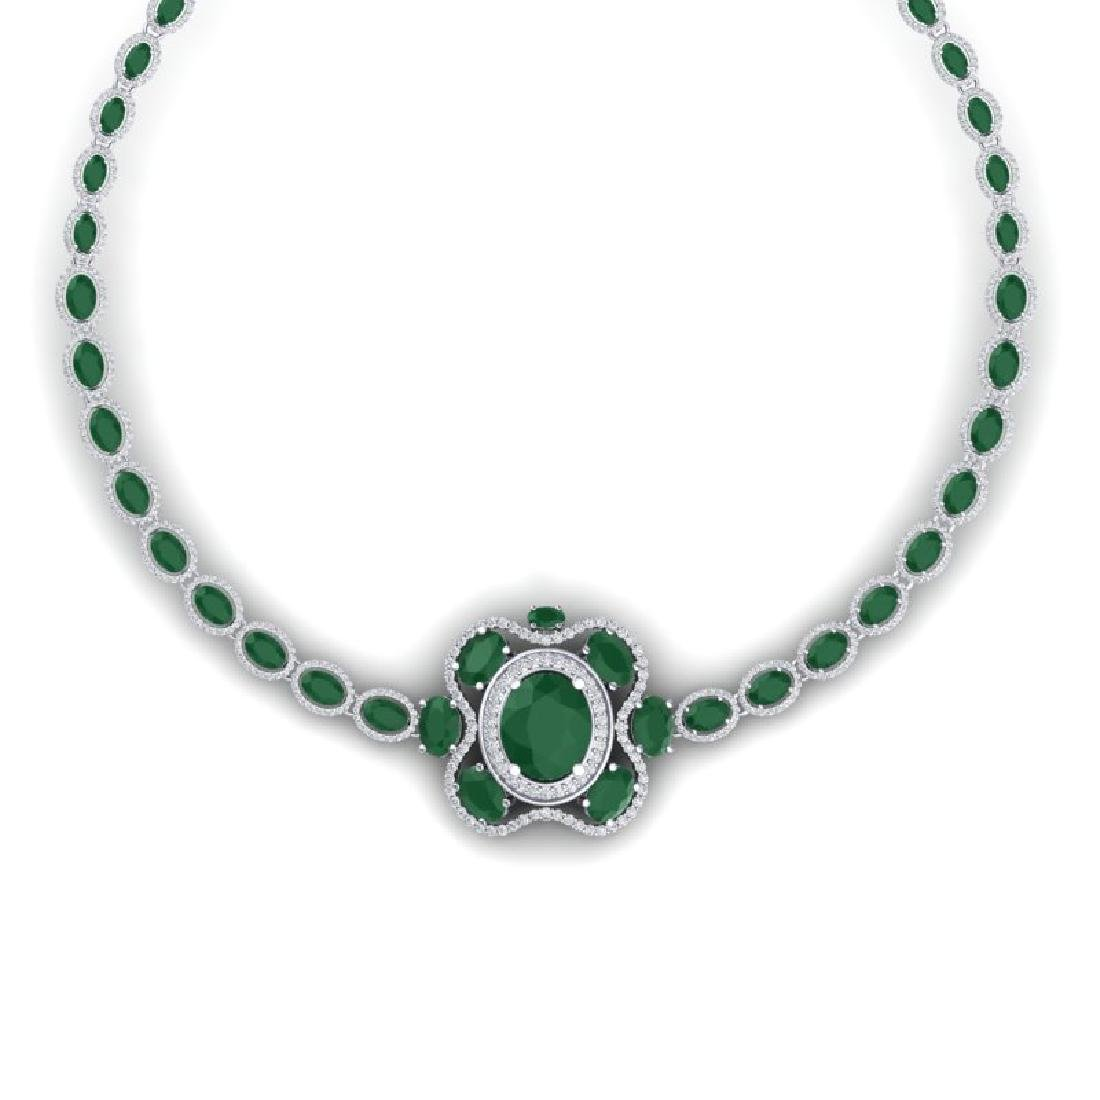 47.43 CTW Royalty Emerald & VS Diamond Necklace 18K - 2